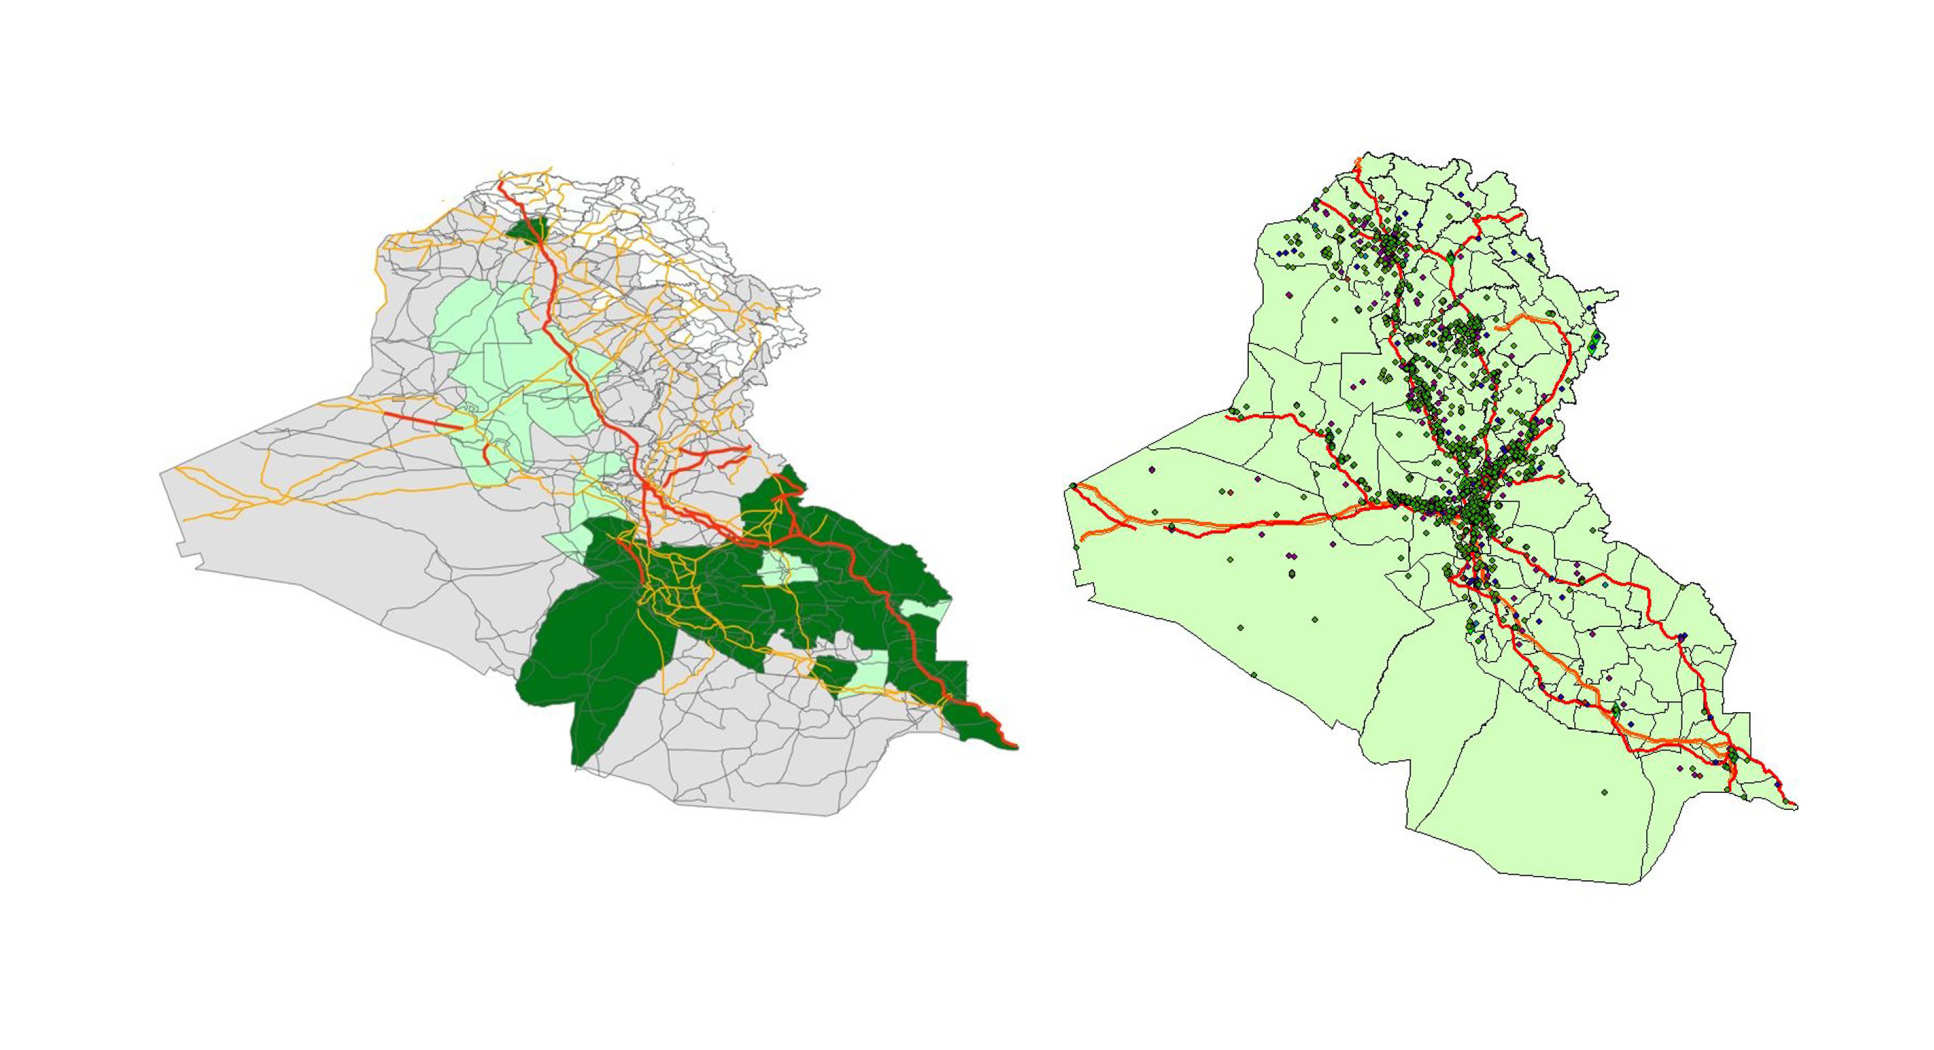 Above, left: 2003 Iraqi road network overlaid on districts. Roads are coloured by road types (main, intermediary  and other roads) and districts by their ethnosectarian split. Above, right: 2012 Iraqi road network overlaid with geolocated violent events occurring the same year.